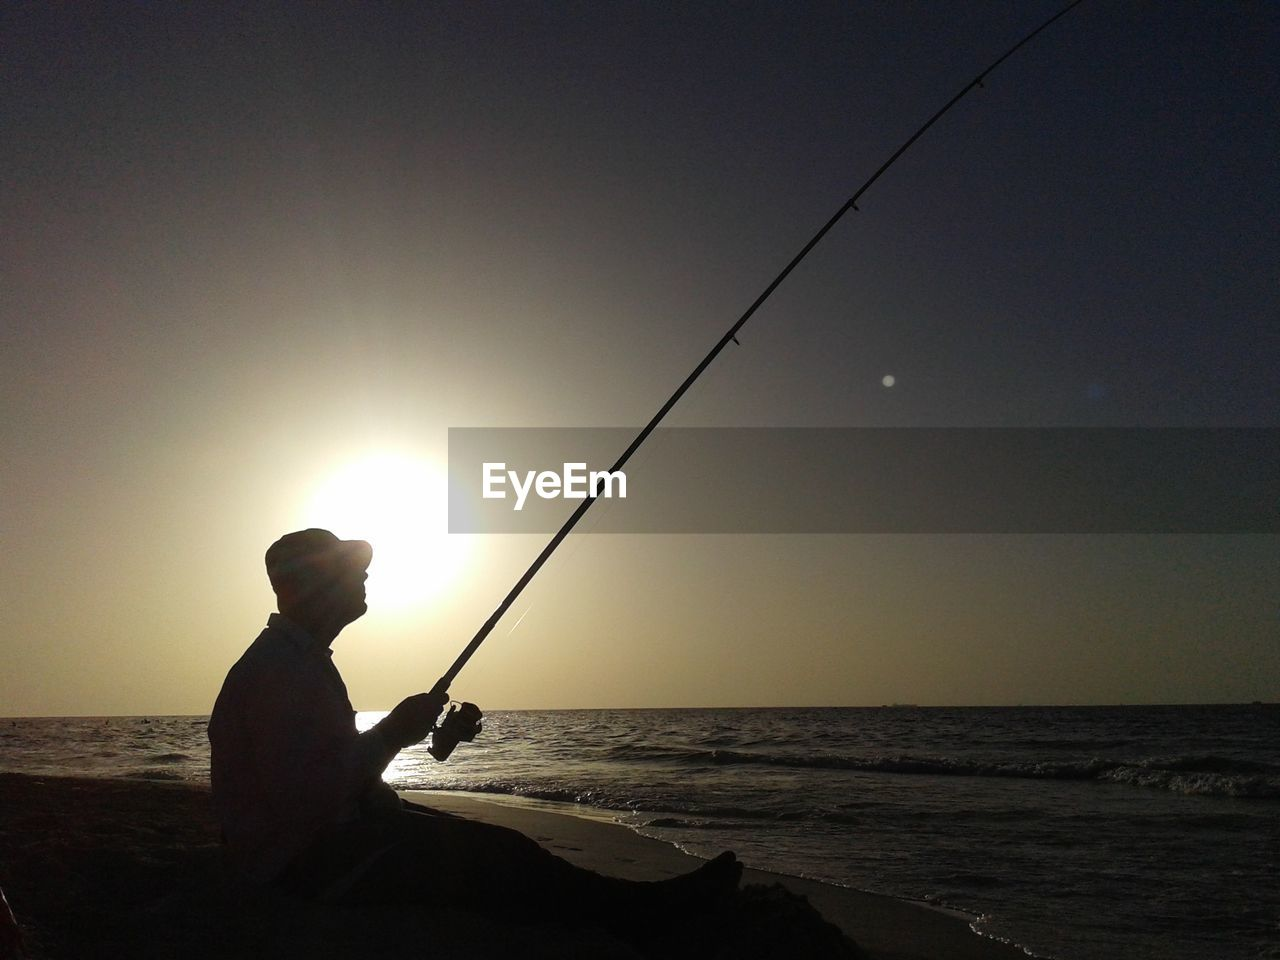 sea, fishing, fishing rod, horizon over water, fishing pole, sun, water, one person, nature, sunset, real people, silhouette, beauty in nature, tranquil scene, weekend activities, scenics, outdoors, holding, clear sky, leisure activity, sky, fishing tackle, side view, sunlight, tranquility, standing, men, full length, day, people